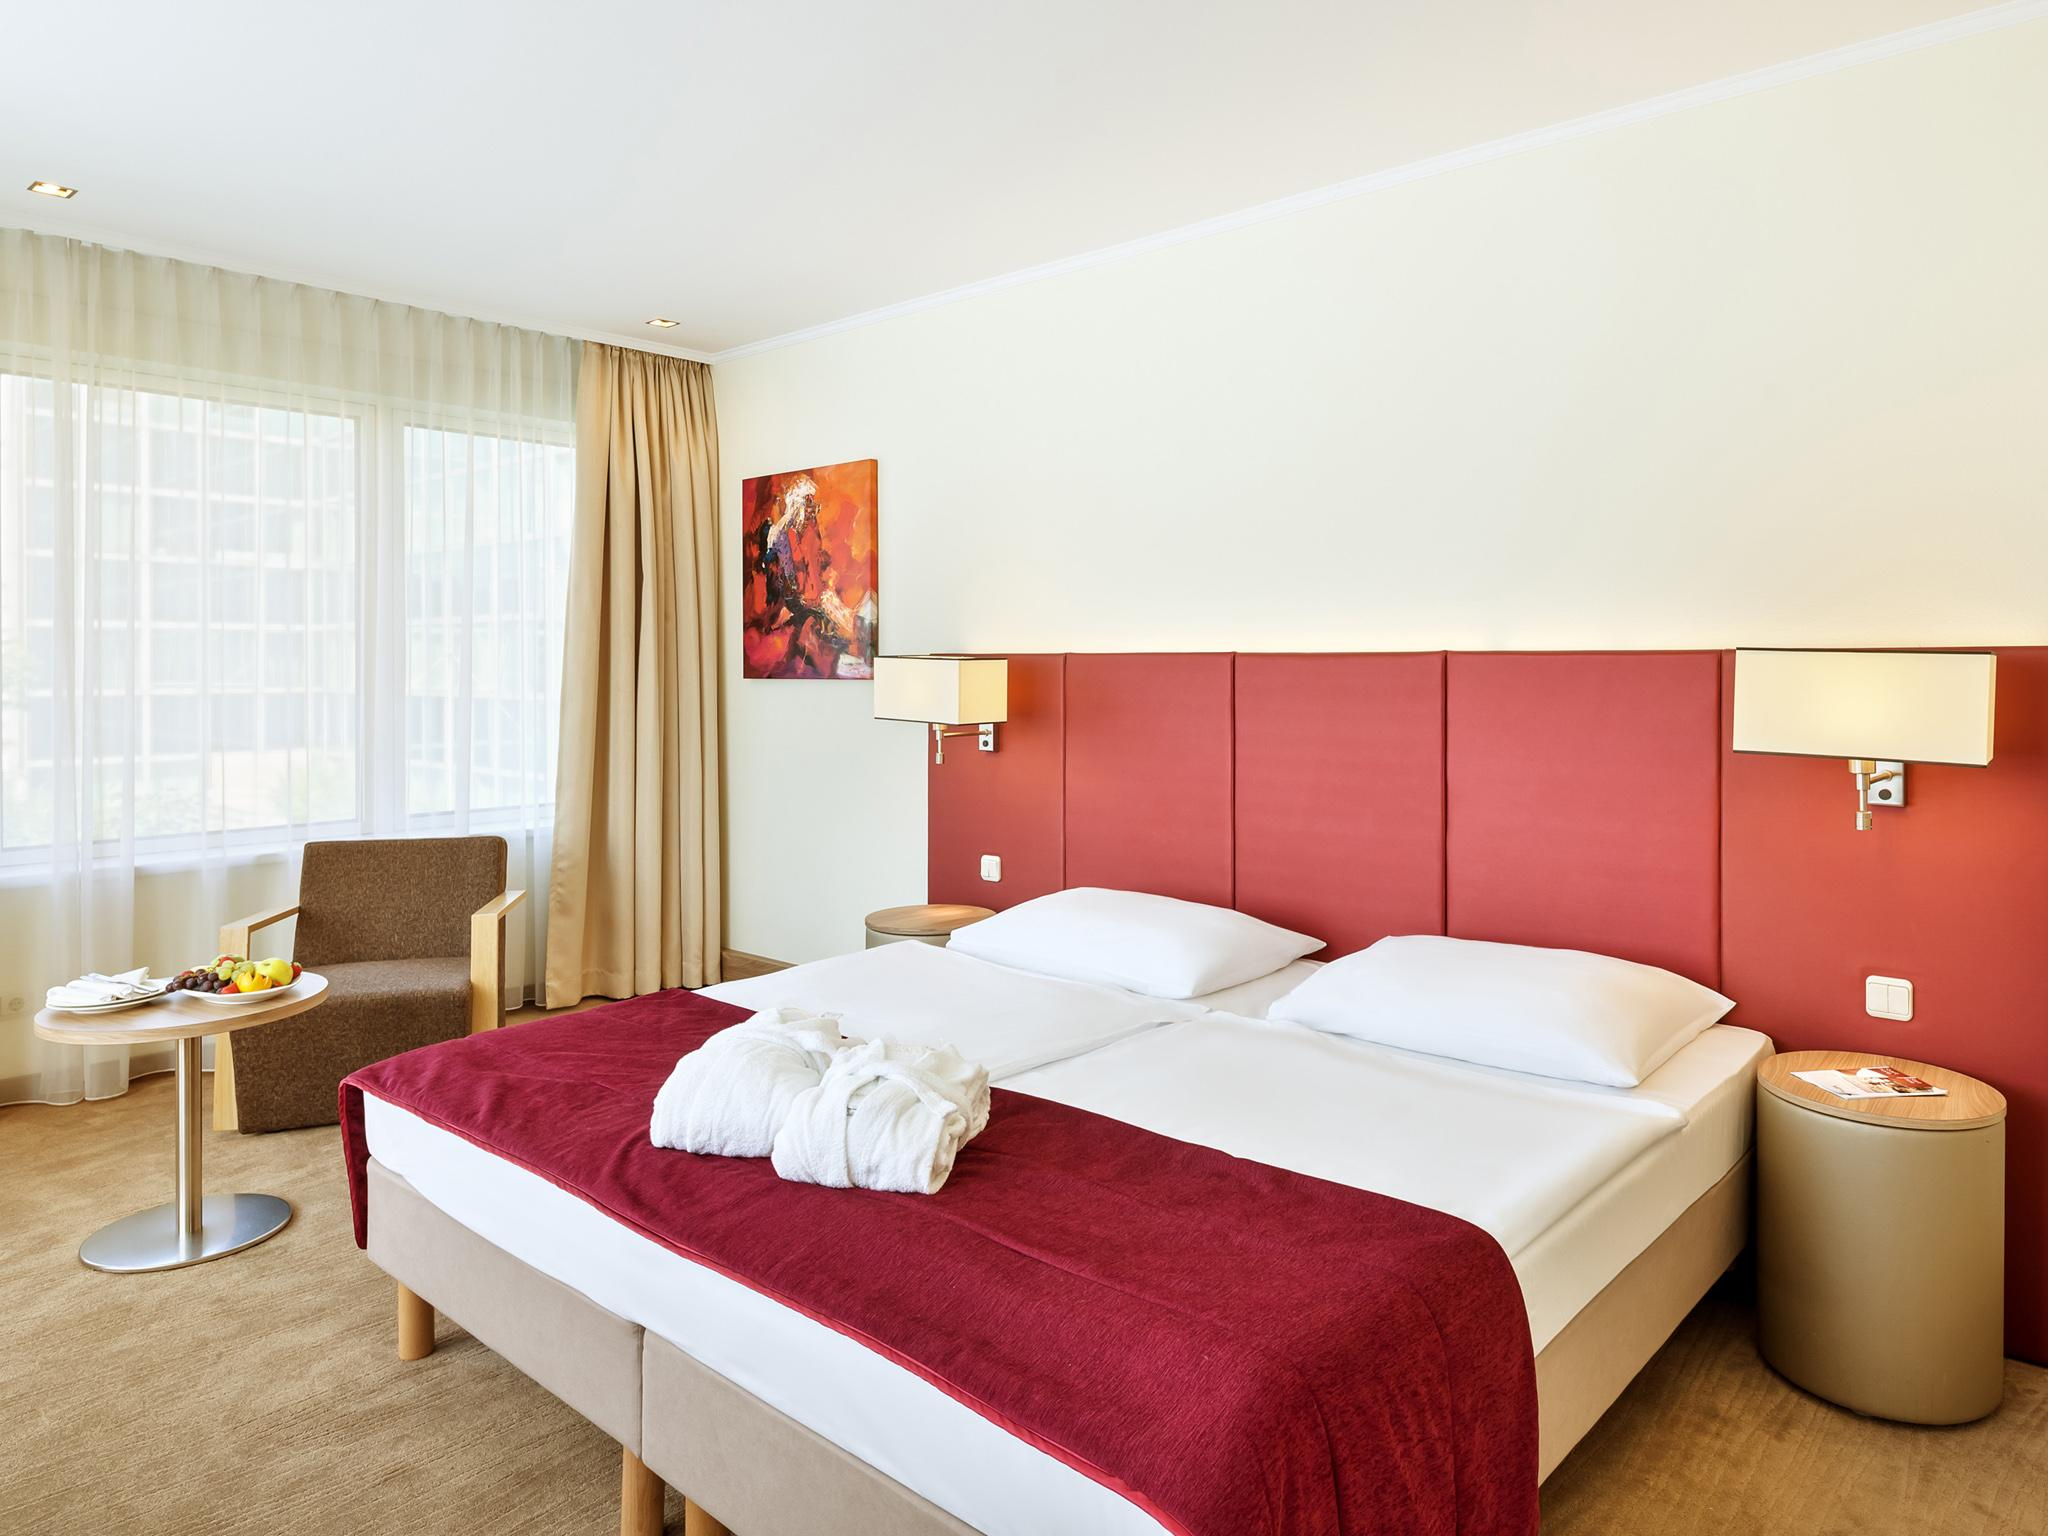 Center Star Bettdecken Austria Trend Hotel Schillerpark Linz In Austria Room Deals